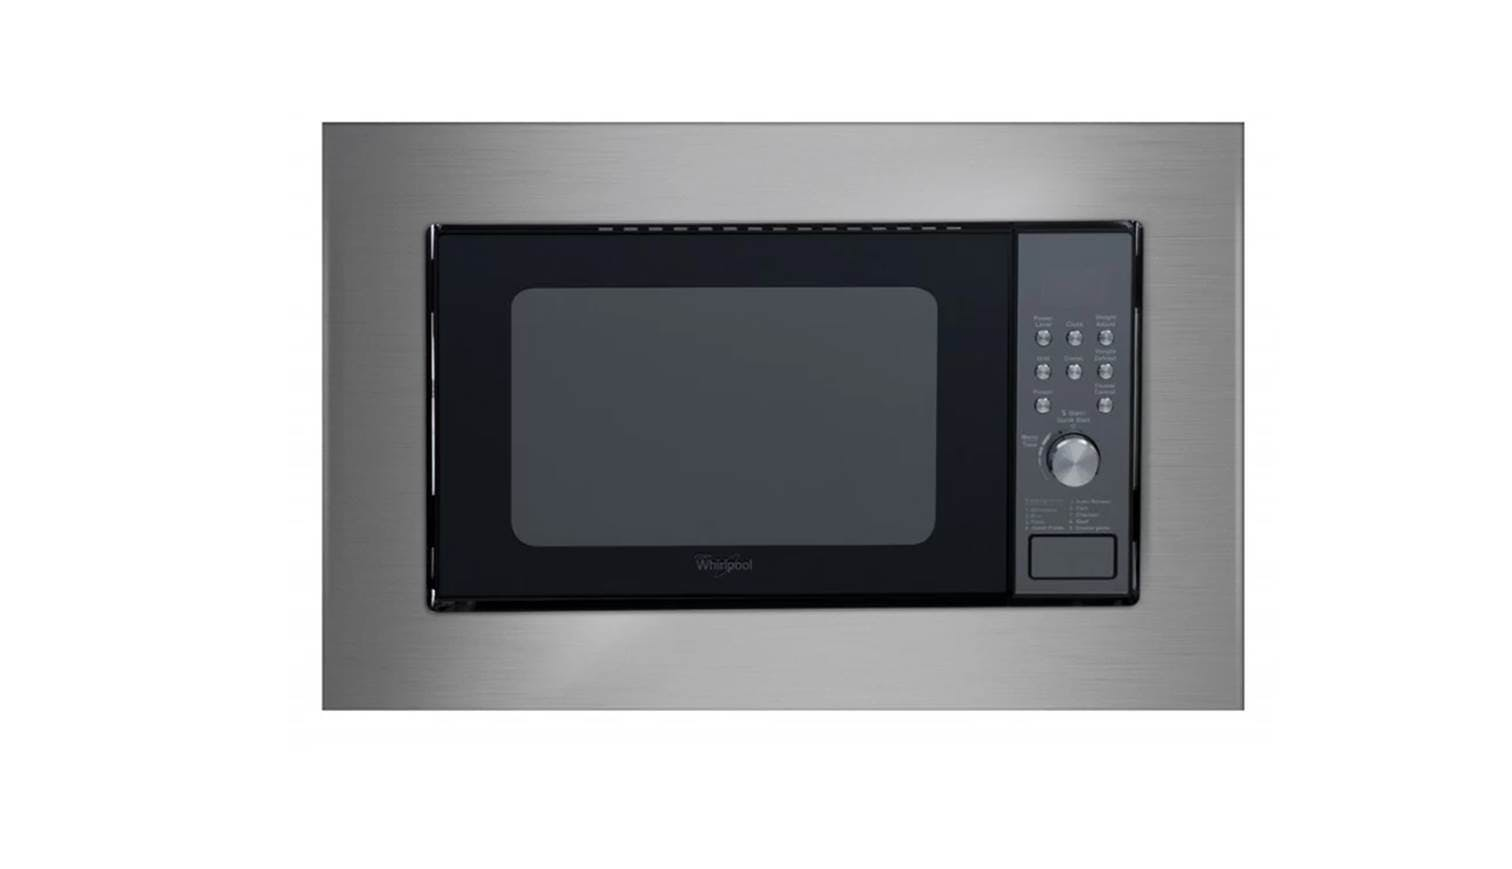 whirlpool mwb208st built in microwave oven harvey norman singapore. Black Bedroom Furniture Sets. Home Design Ideas